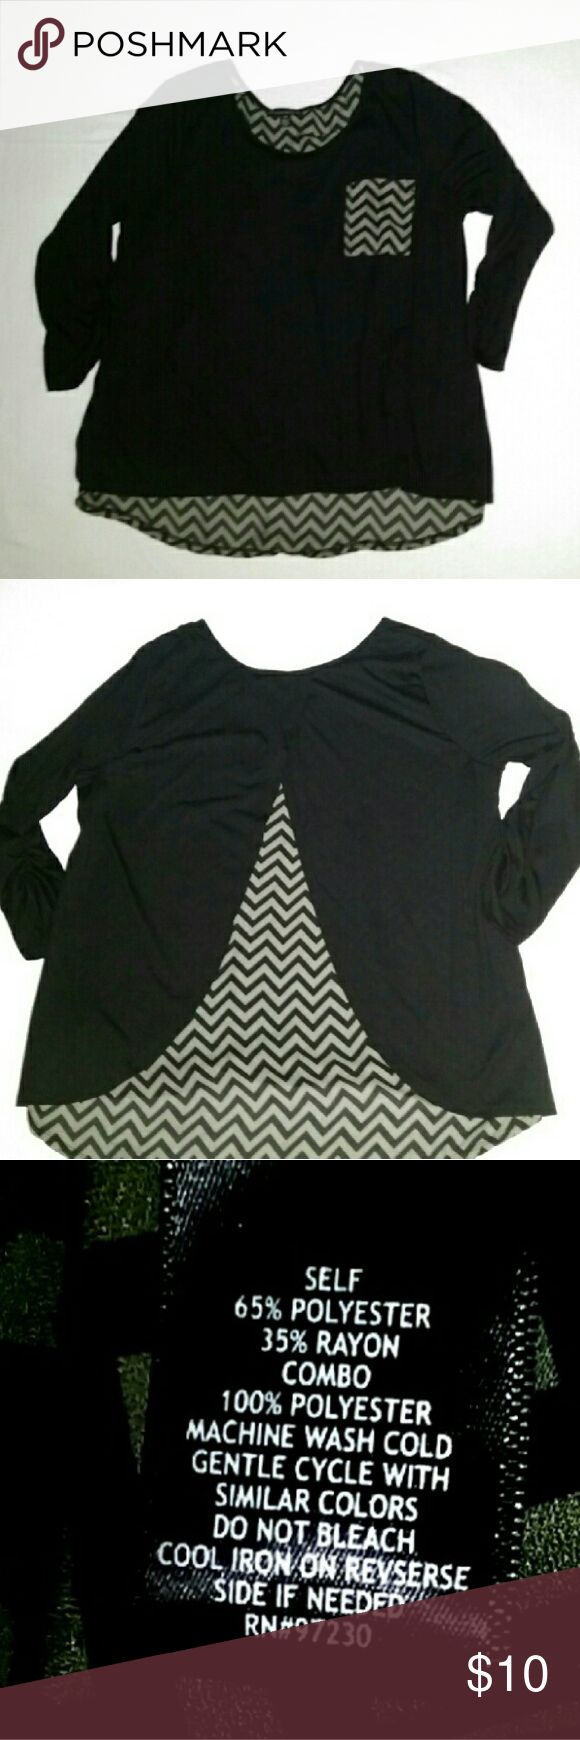 NWOT Large Black & Gray Chevron Pocket Top NWOT Large Contemporary Style Signature Studio Black & Gray Chevron Pocket Top. Never worn. 3/4 length sleeves.  From the front, it looks like a black shirt with a chevron pocket. From the back, the black material splits at the back of the neck and from underneath, the gray chevron pattern hangs down further than the rest of the shirt. Picture shows it better than I can explain it, I just didn't want anyone to be mislead from the front view picture…